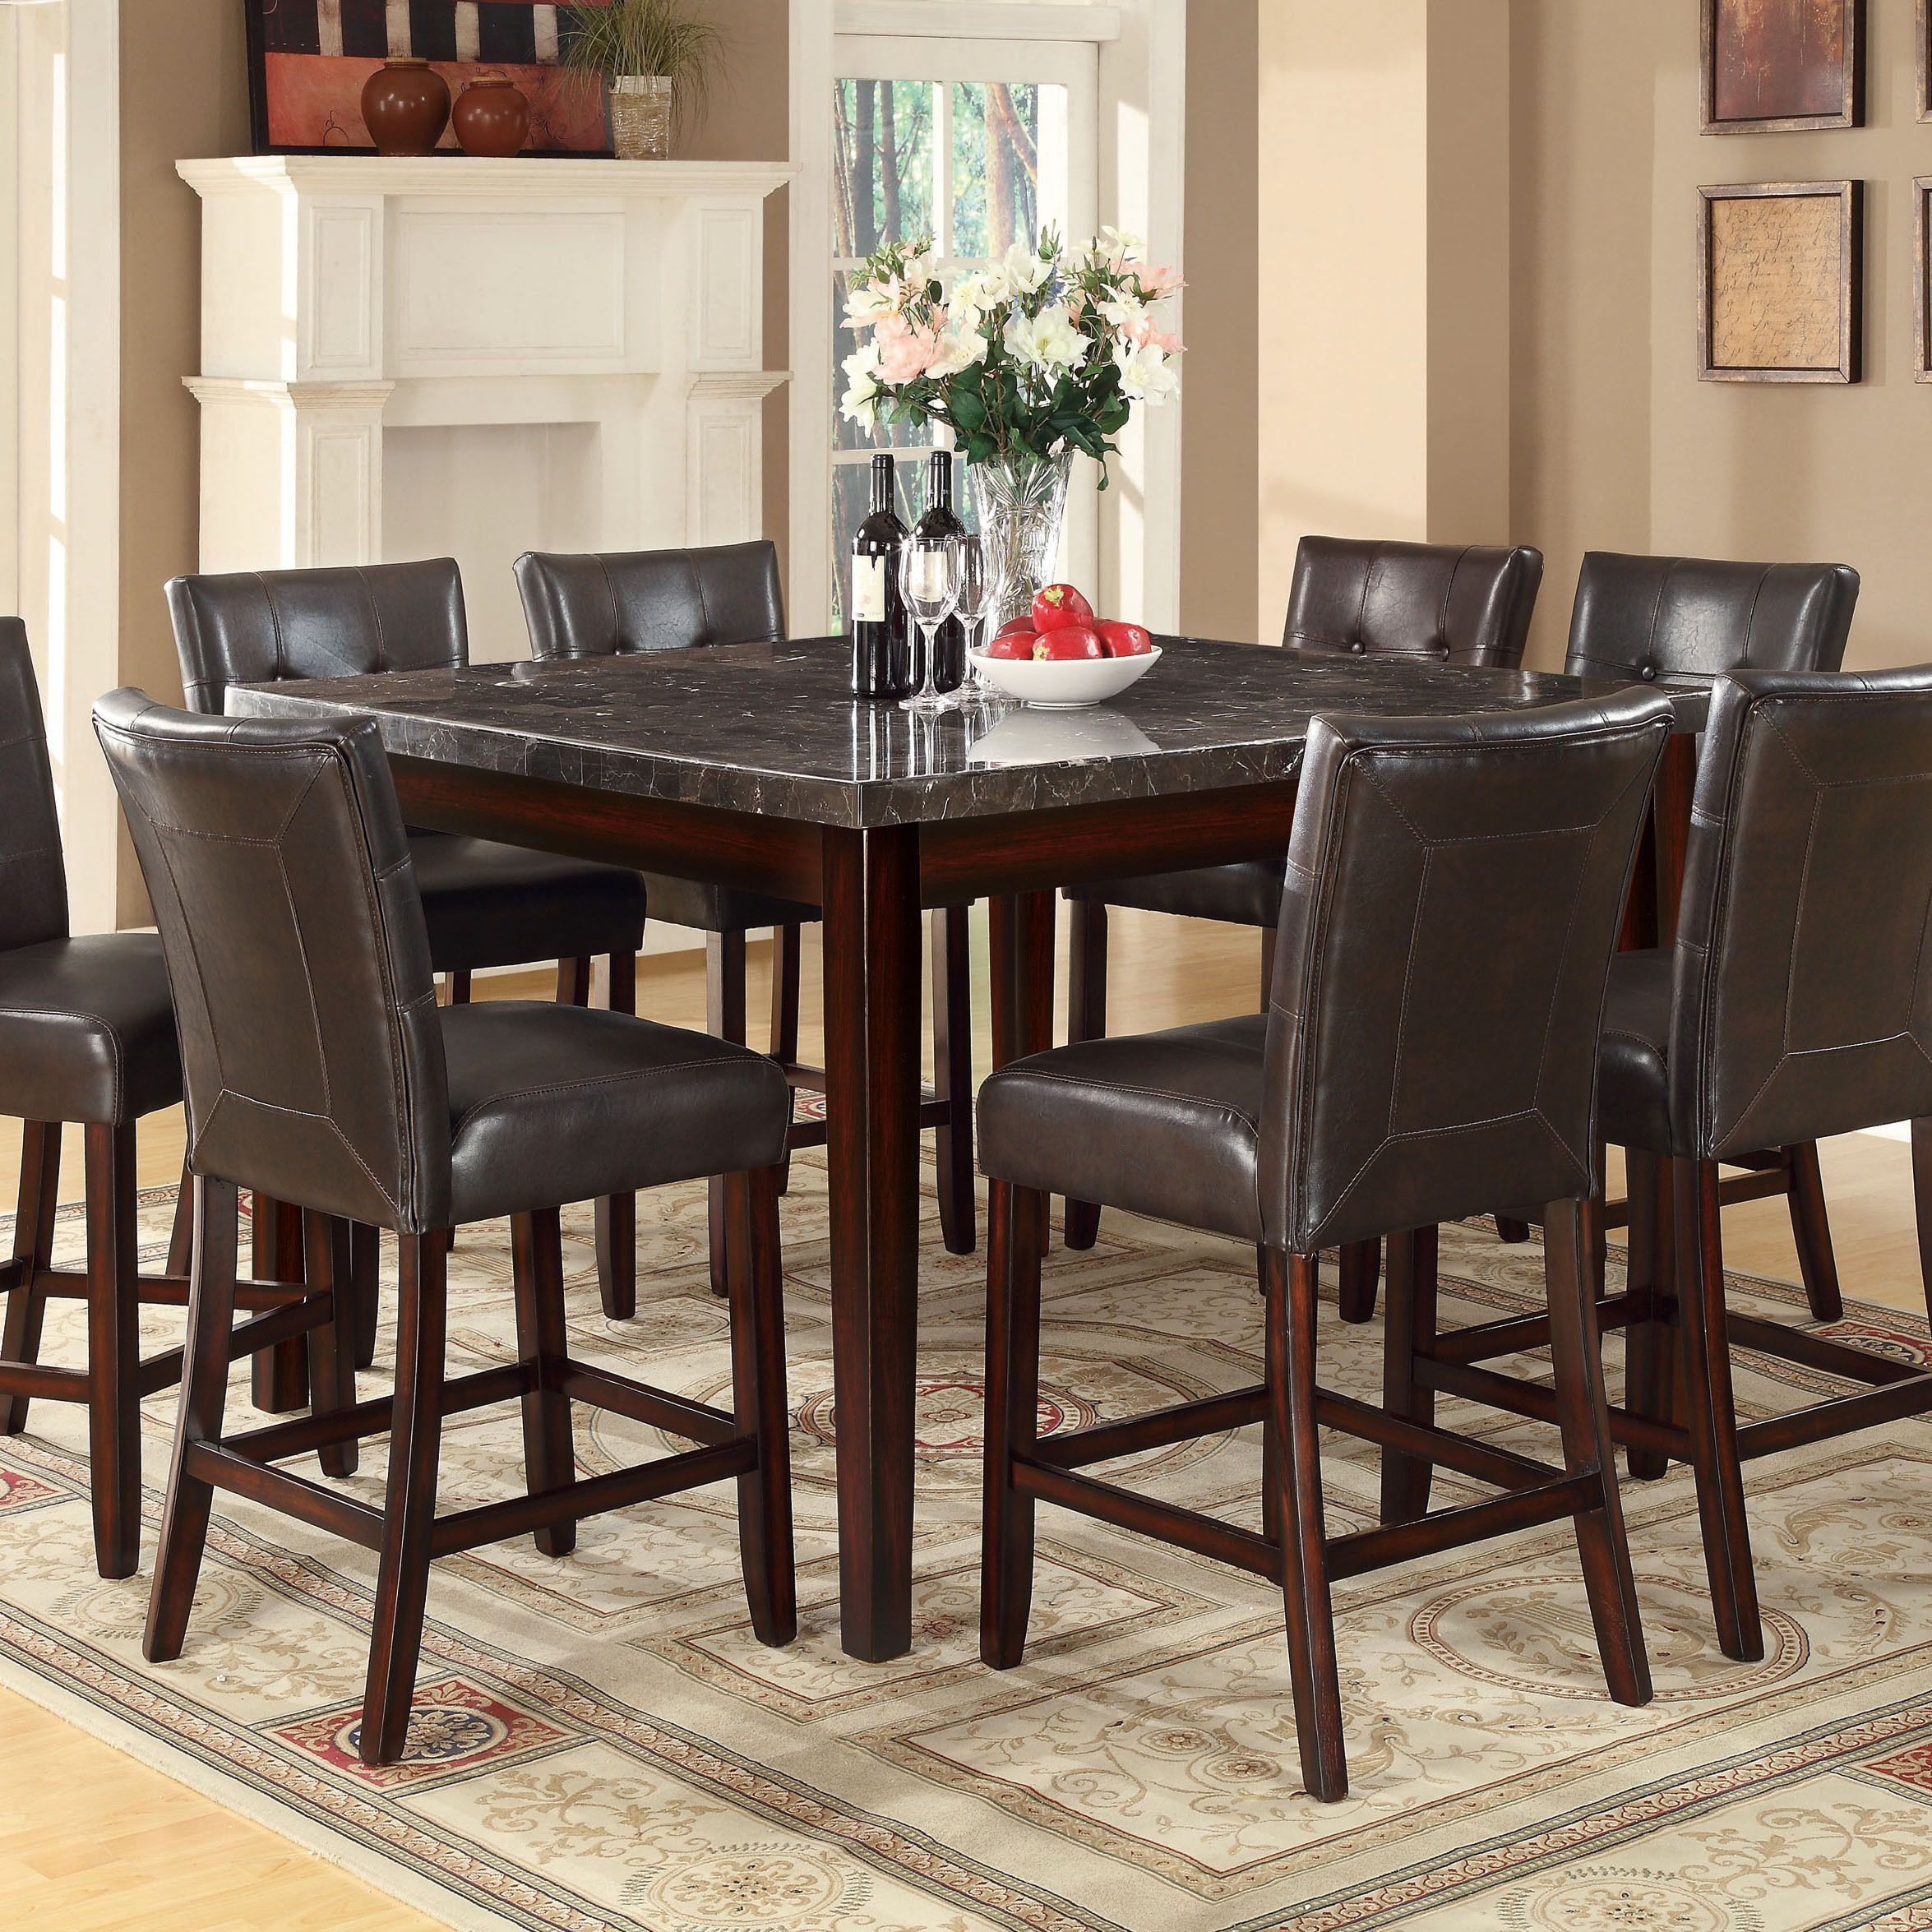 Coaster Company Milton Cappuccino Marbletop Dining Table Best Comfortable Dining Room Sets Design Decoration